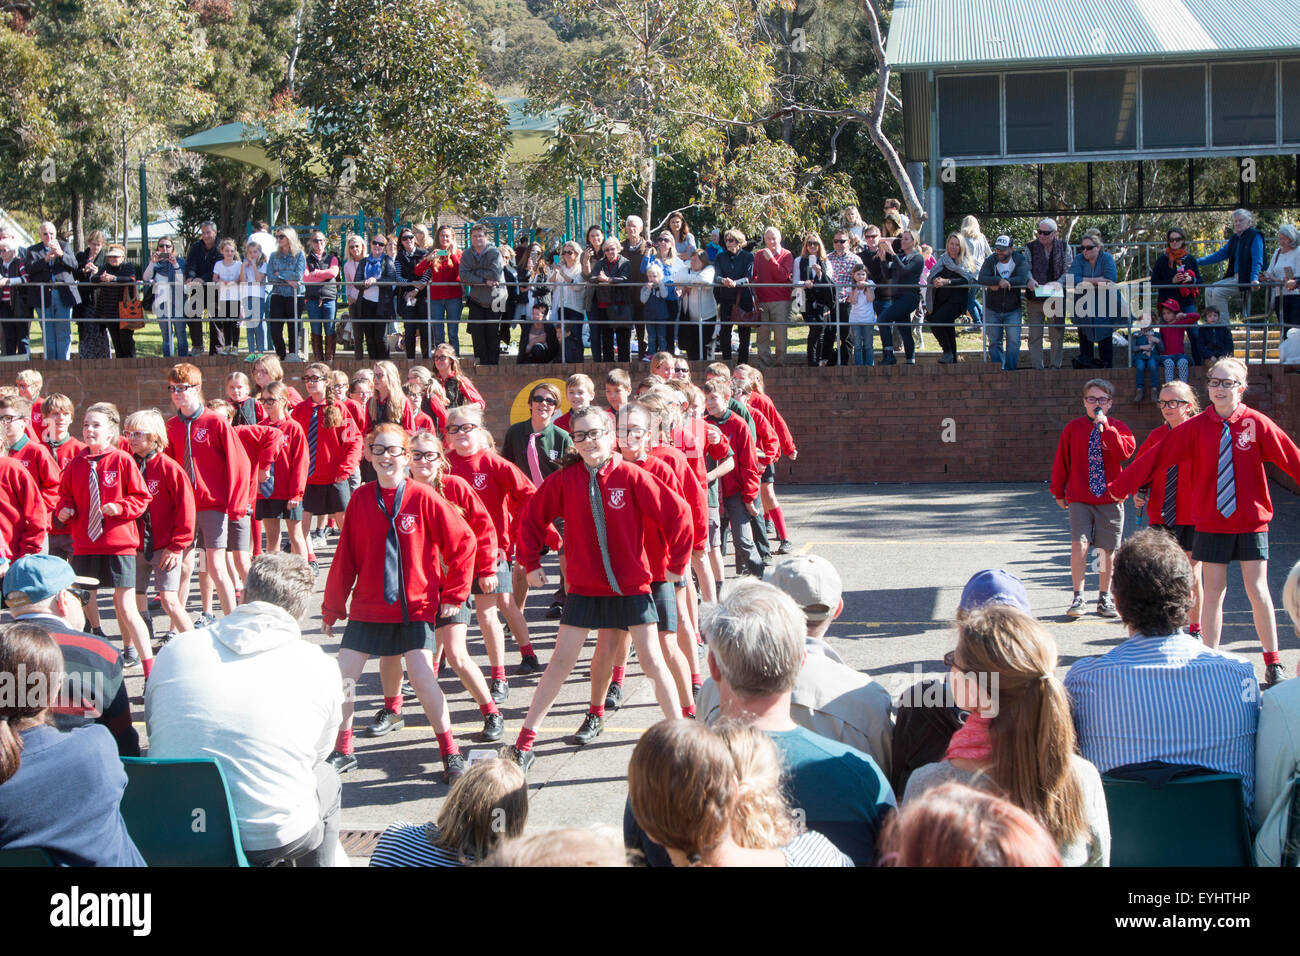 Parents watching their children perform at a school open day festival,Sydney,Australia - Stock Image